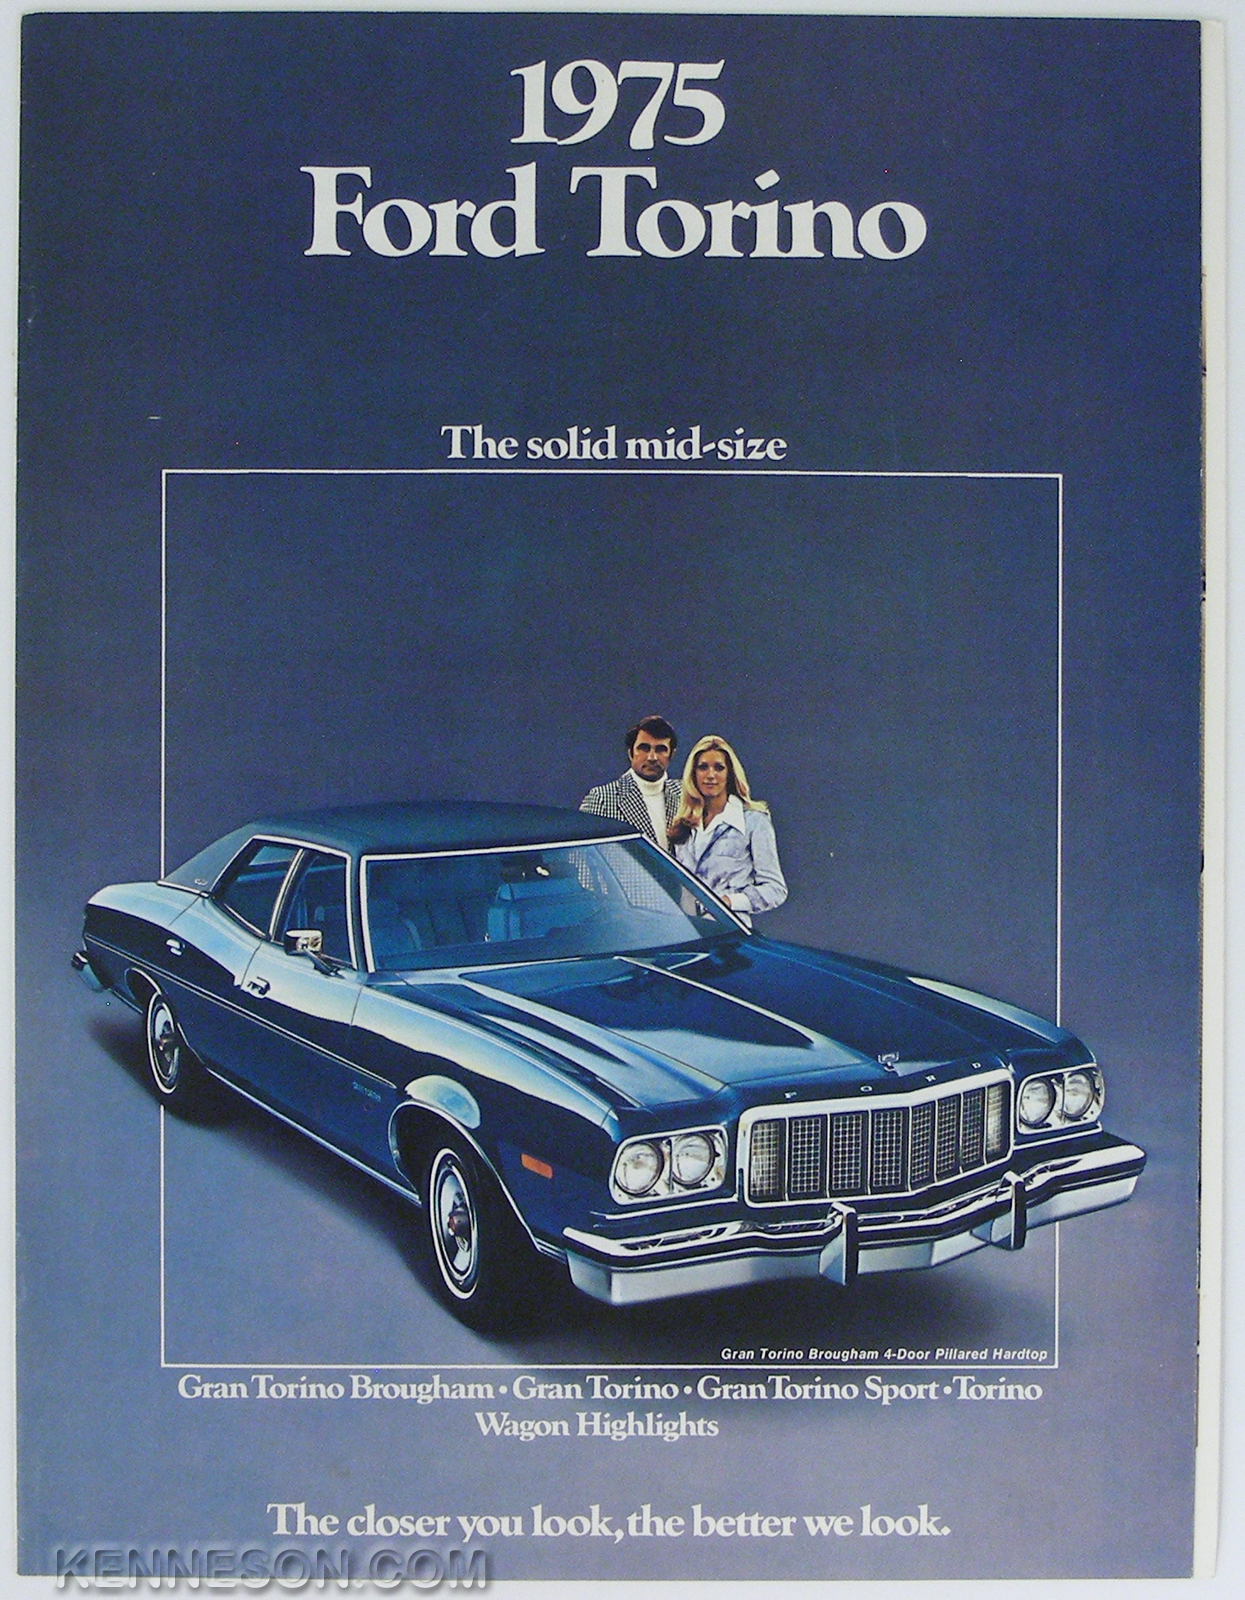 Ford 1975 Torino Sales Brochure Ebay Gran Sport Thanks For Viewing Our Auction